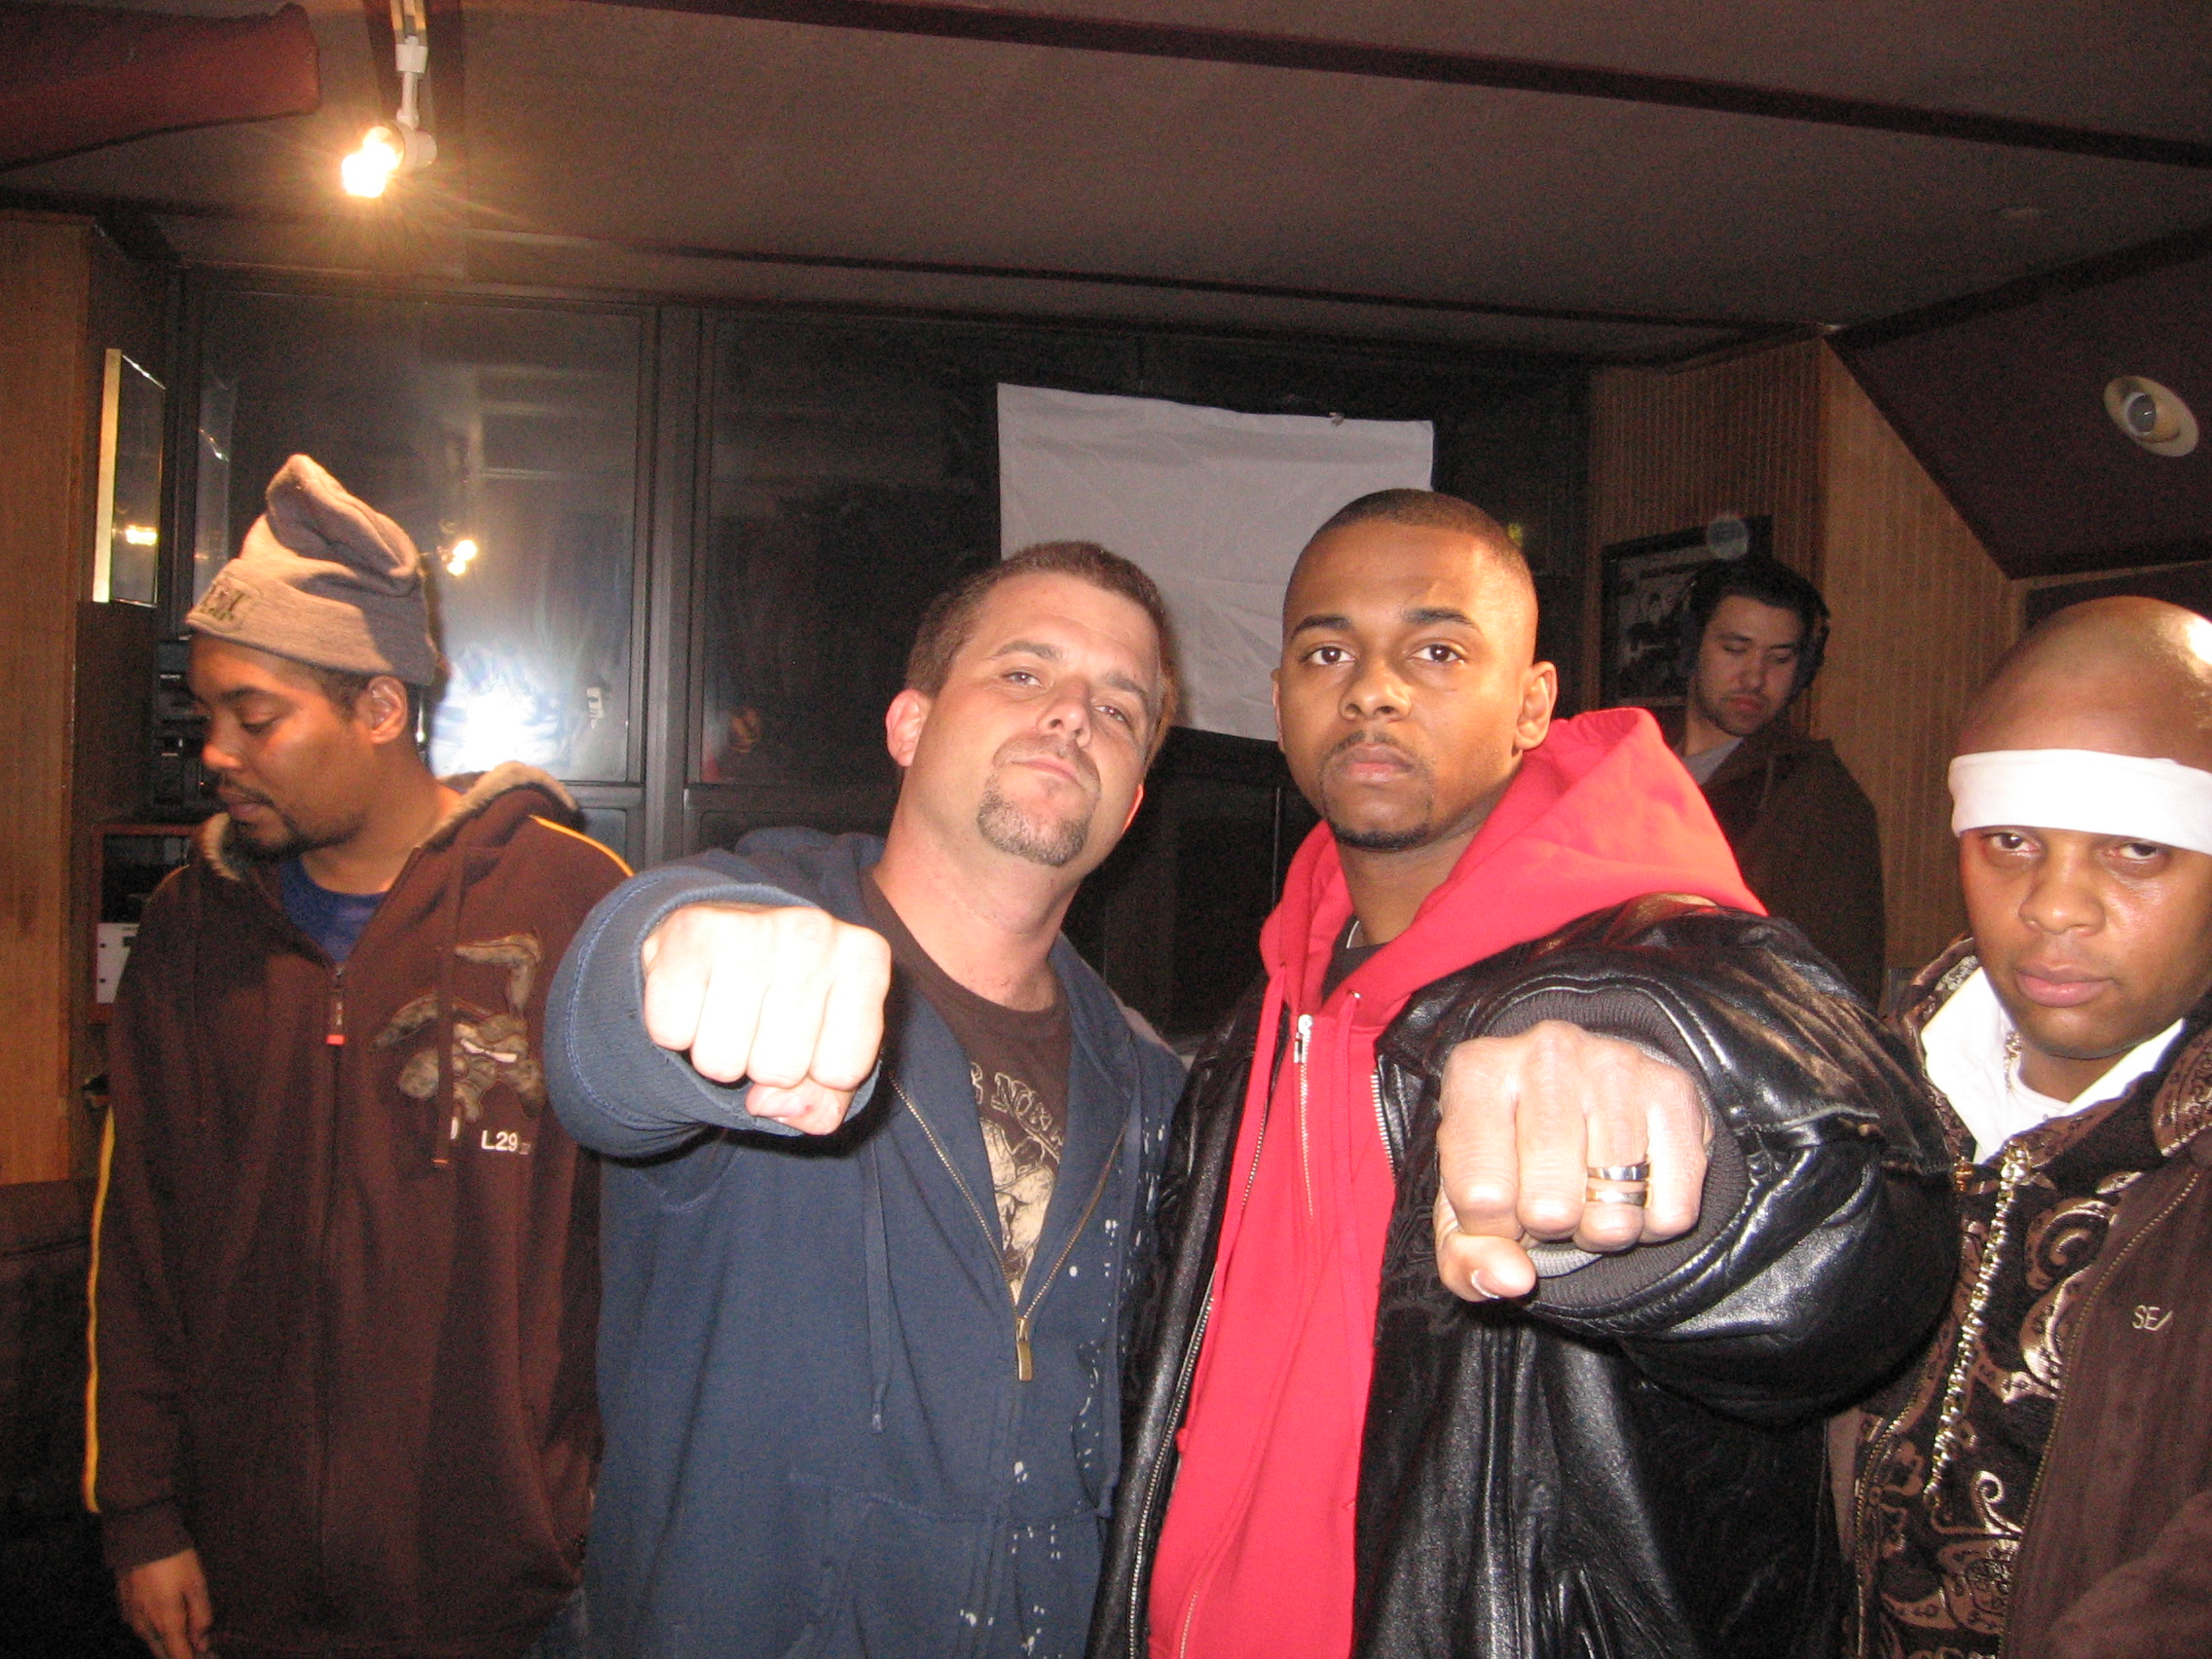 Director Frank Meyer, Hell Razah and Shabazz the Disciple behind the scenes 2008